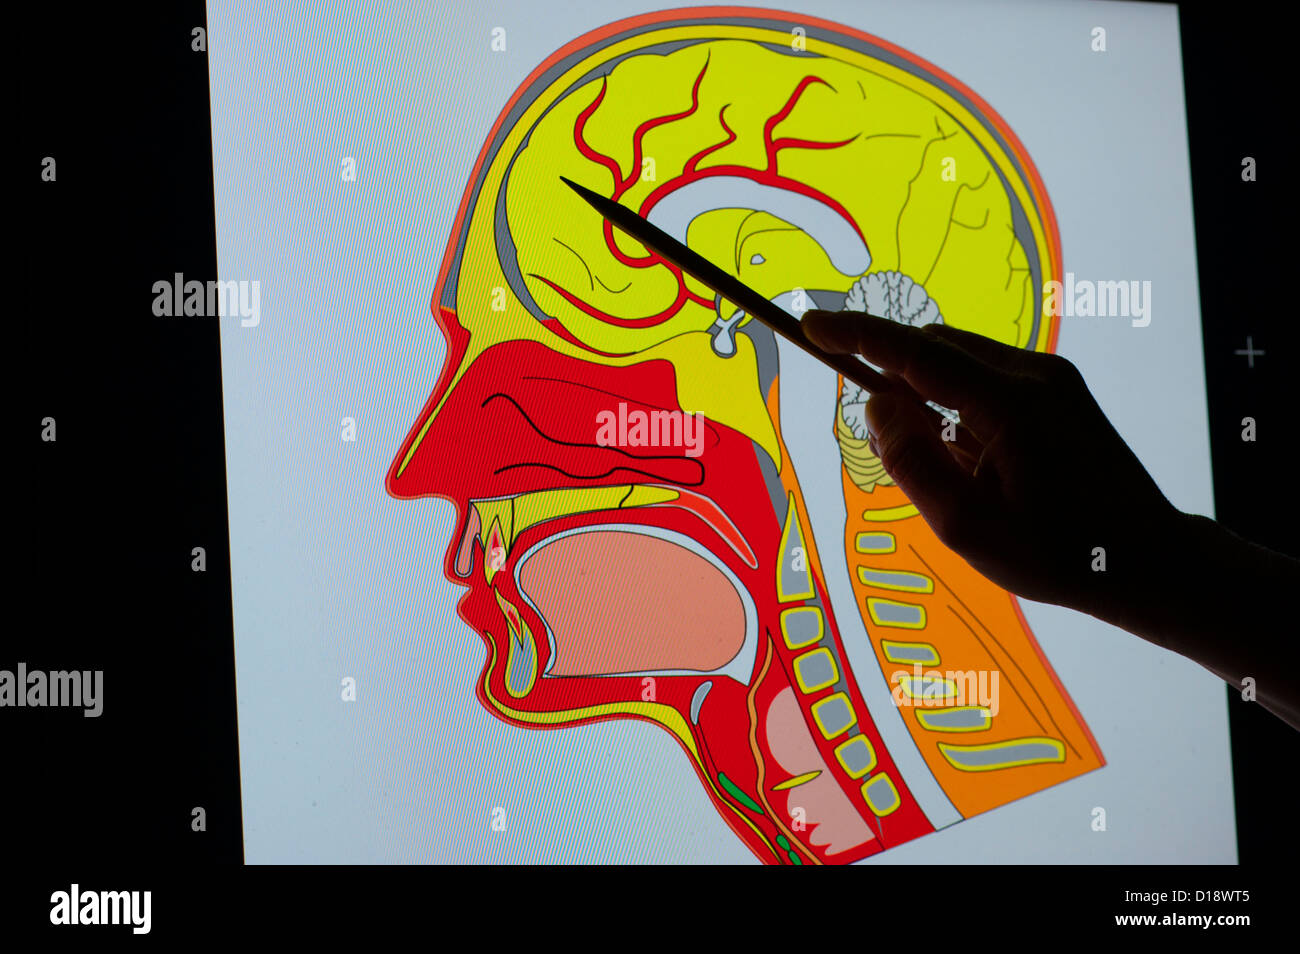 conceptual view of a hand with a pointer projected on monitor of a brain - Stock Image